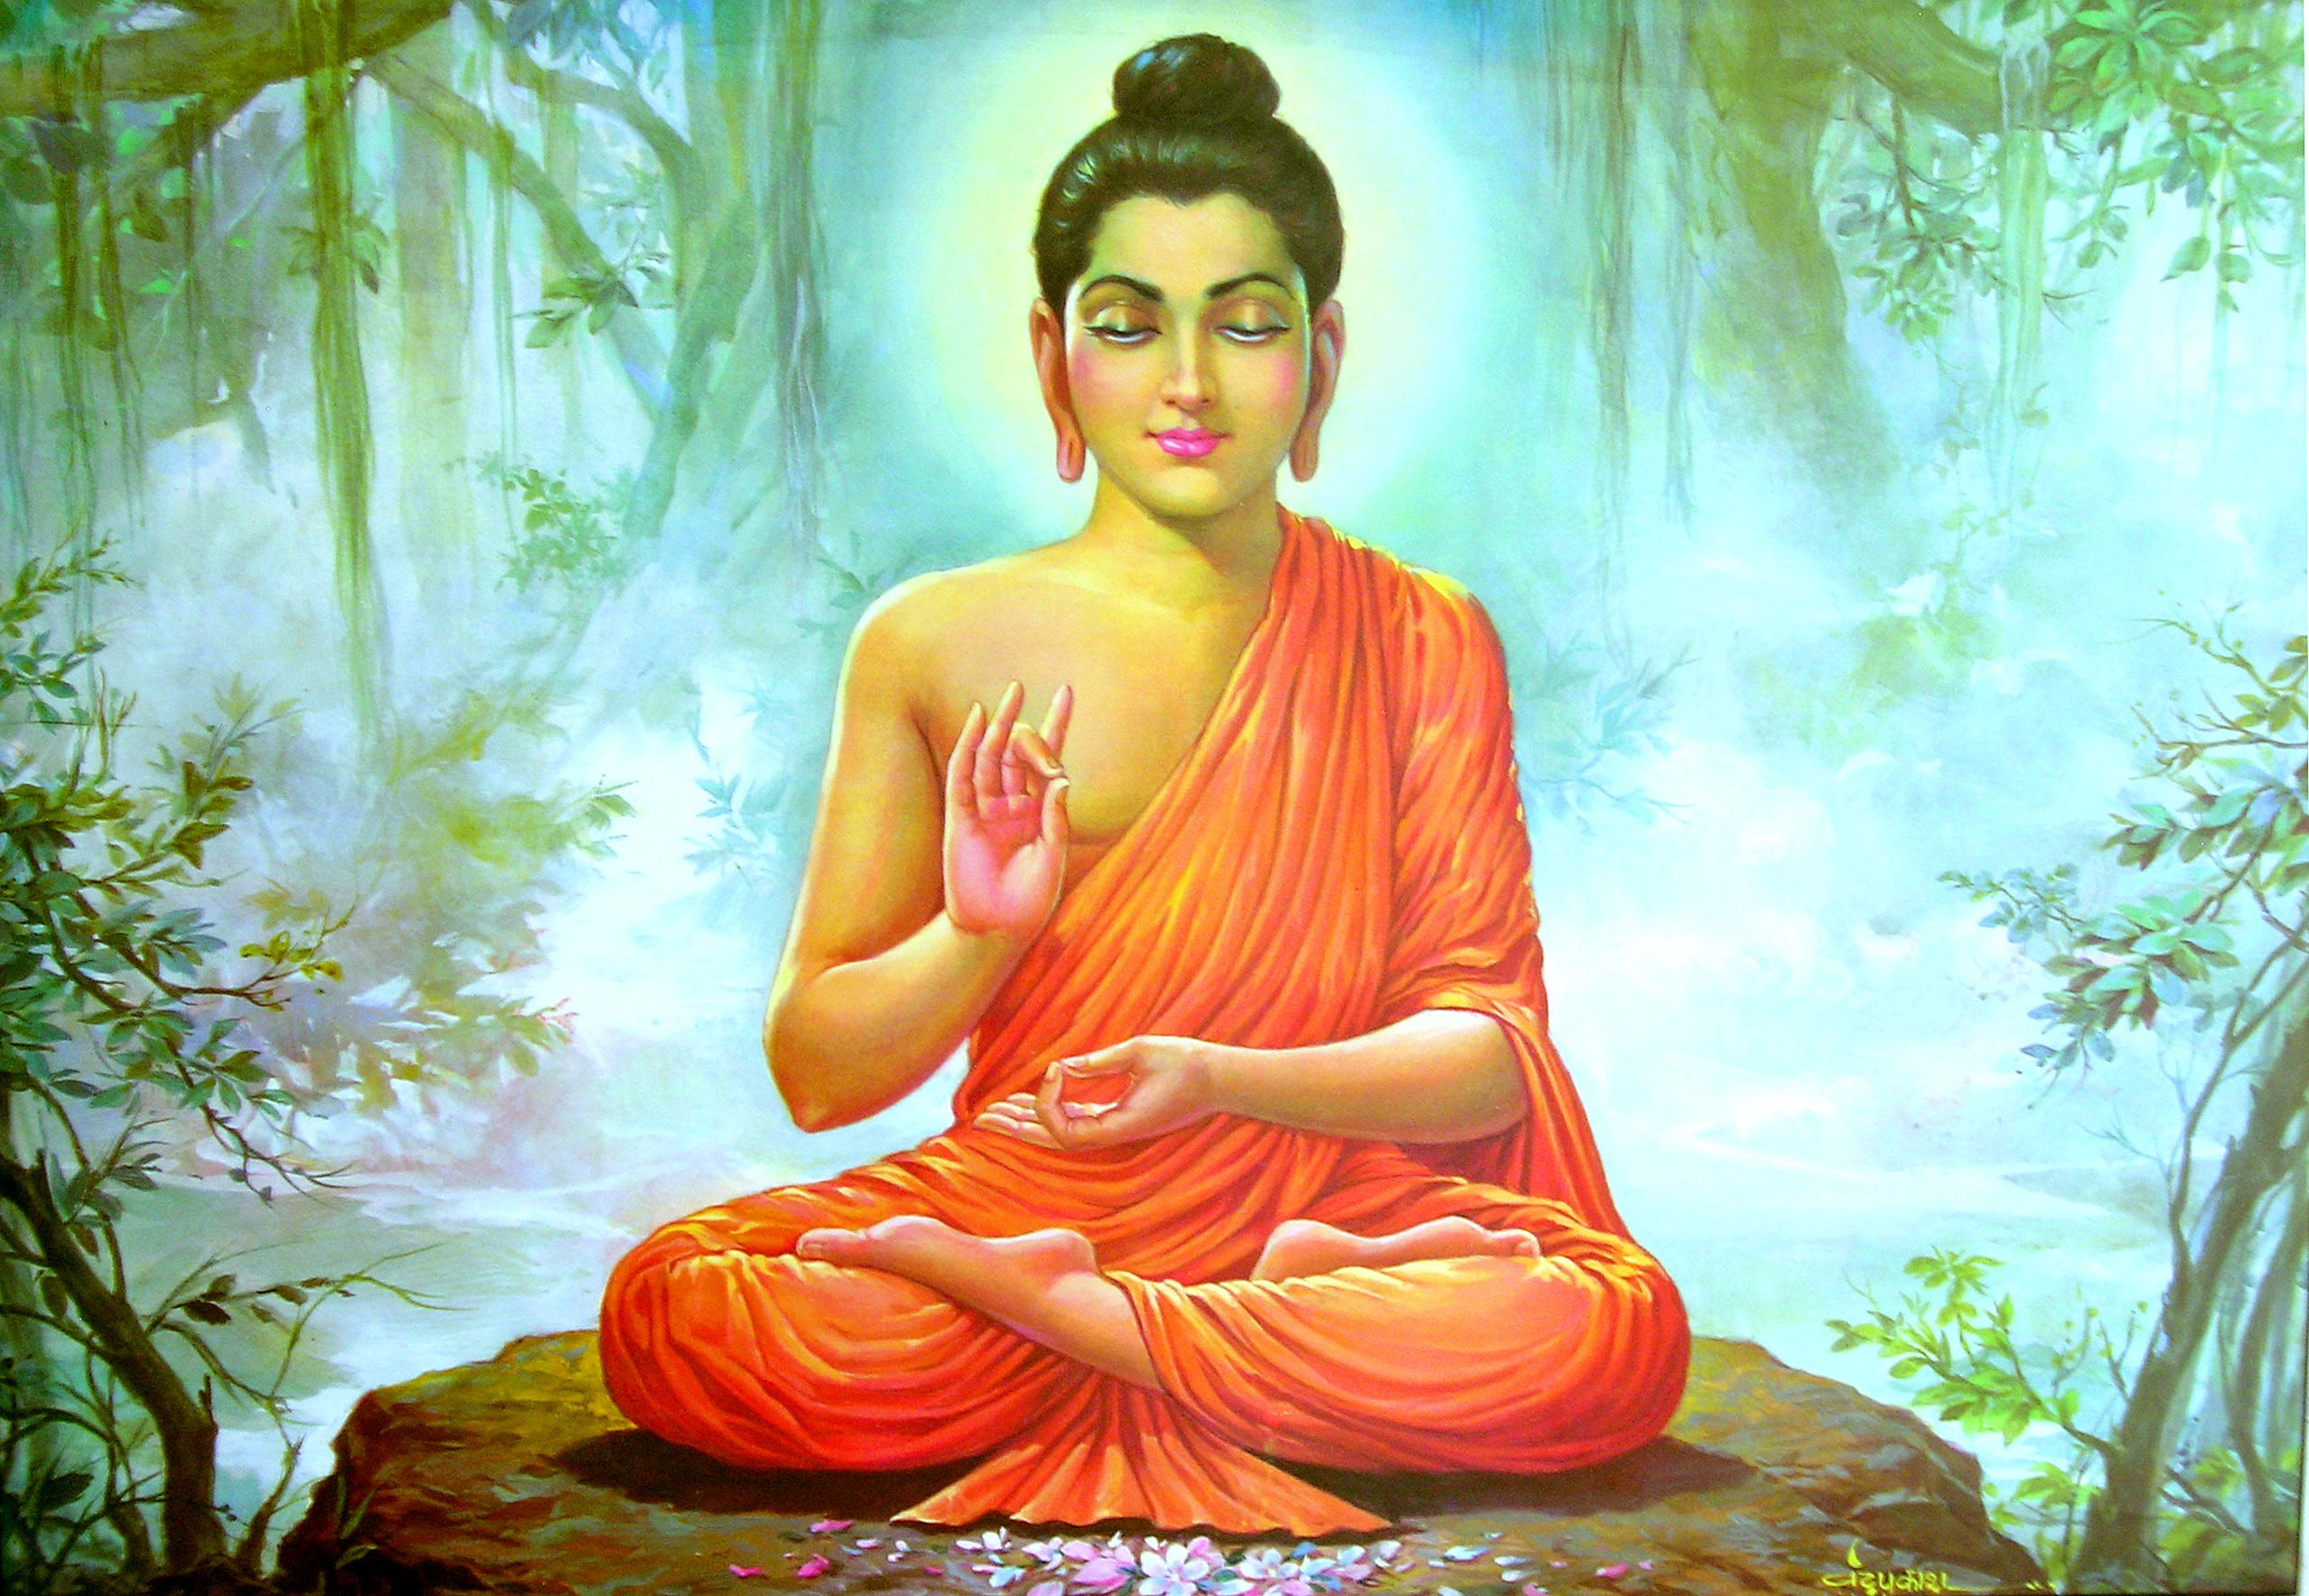 Buddha Wallpaper pictures HD humble